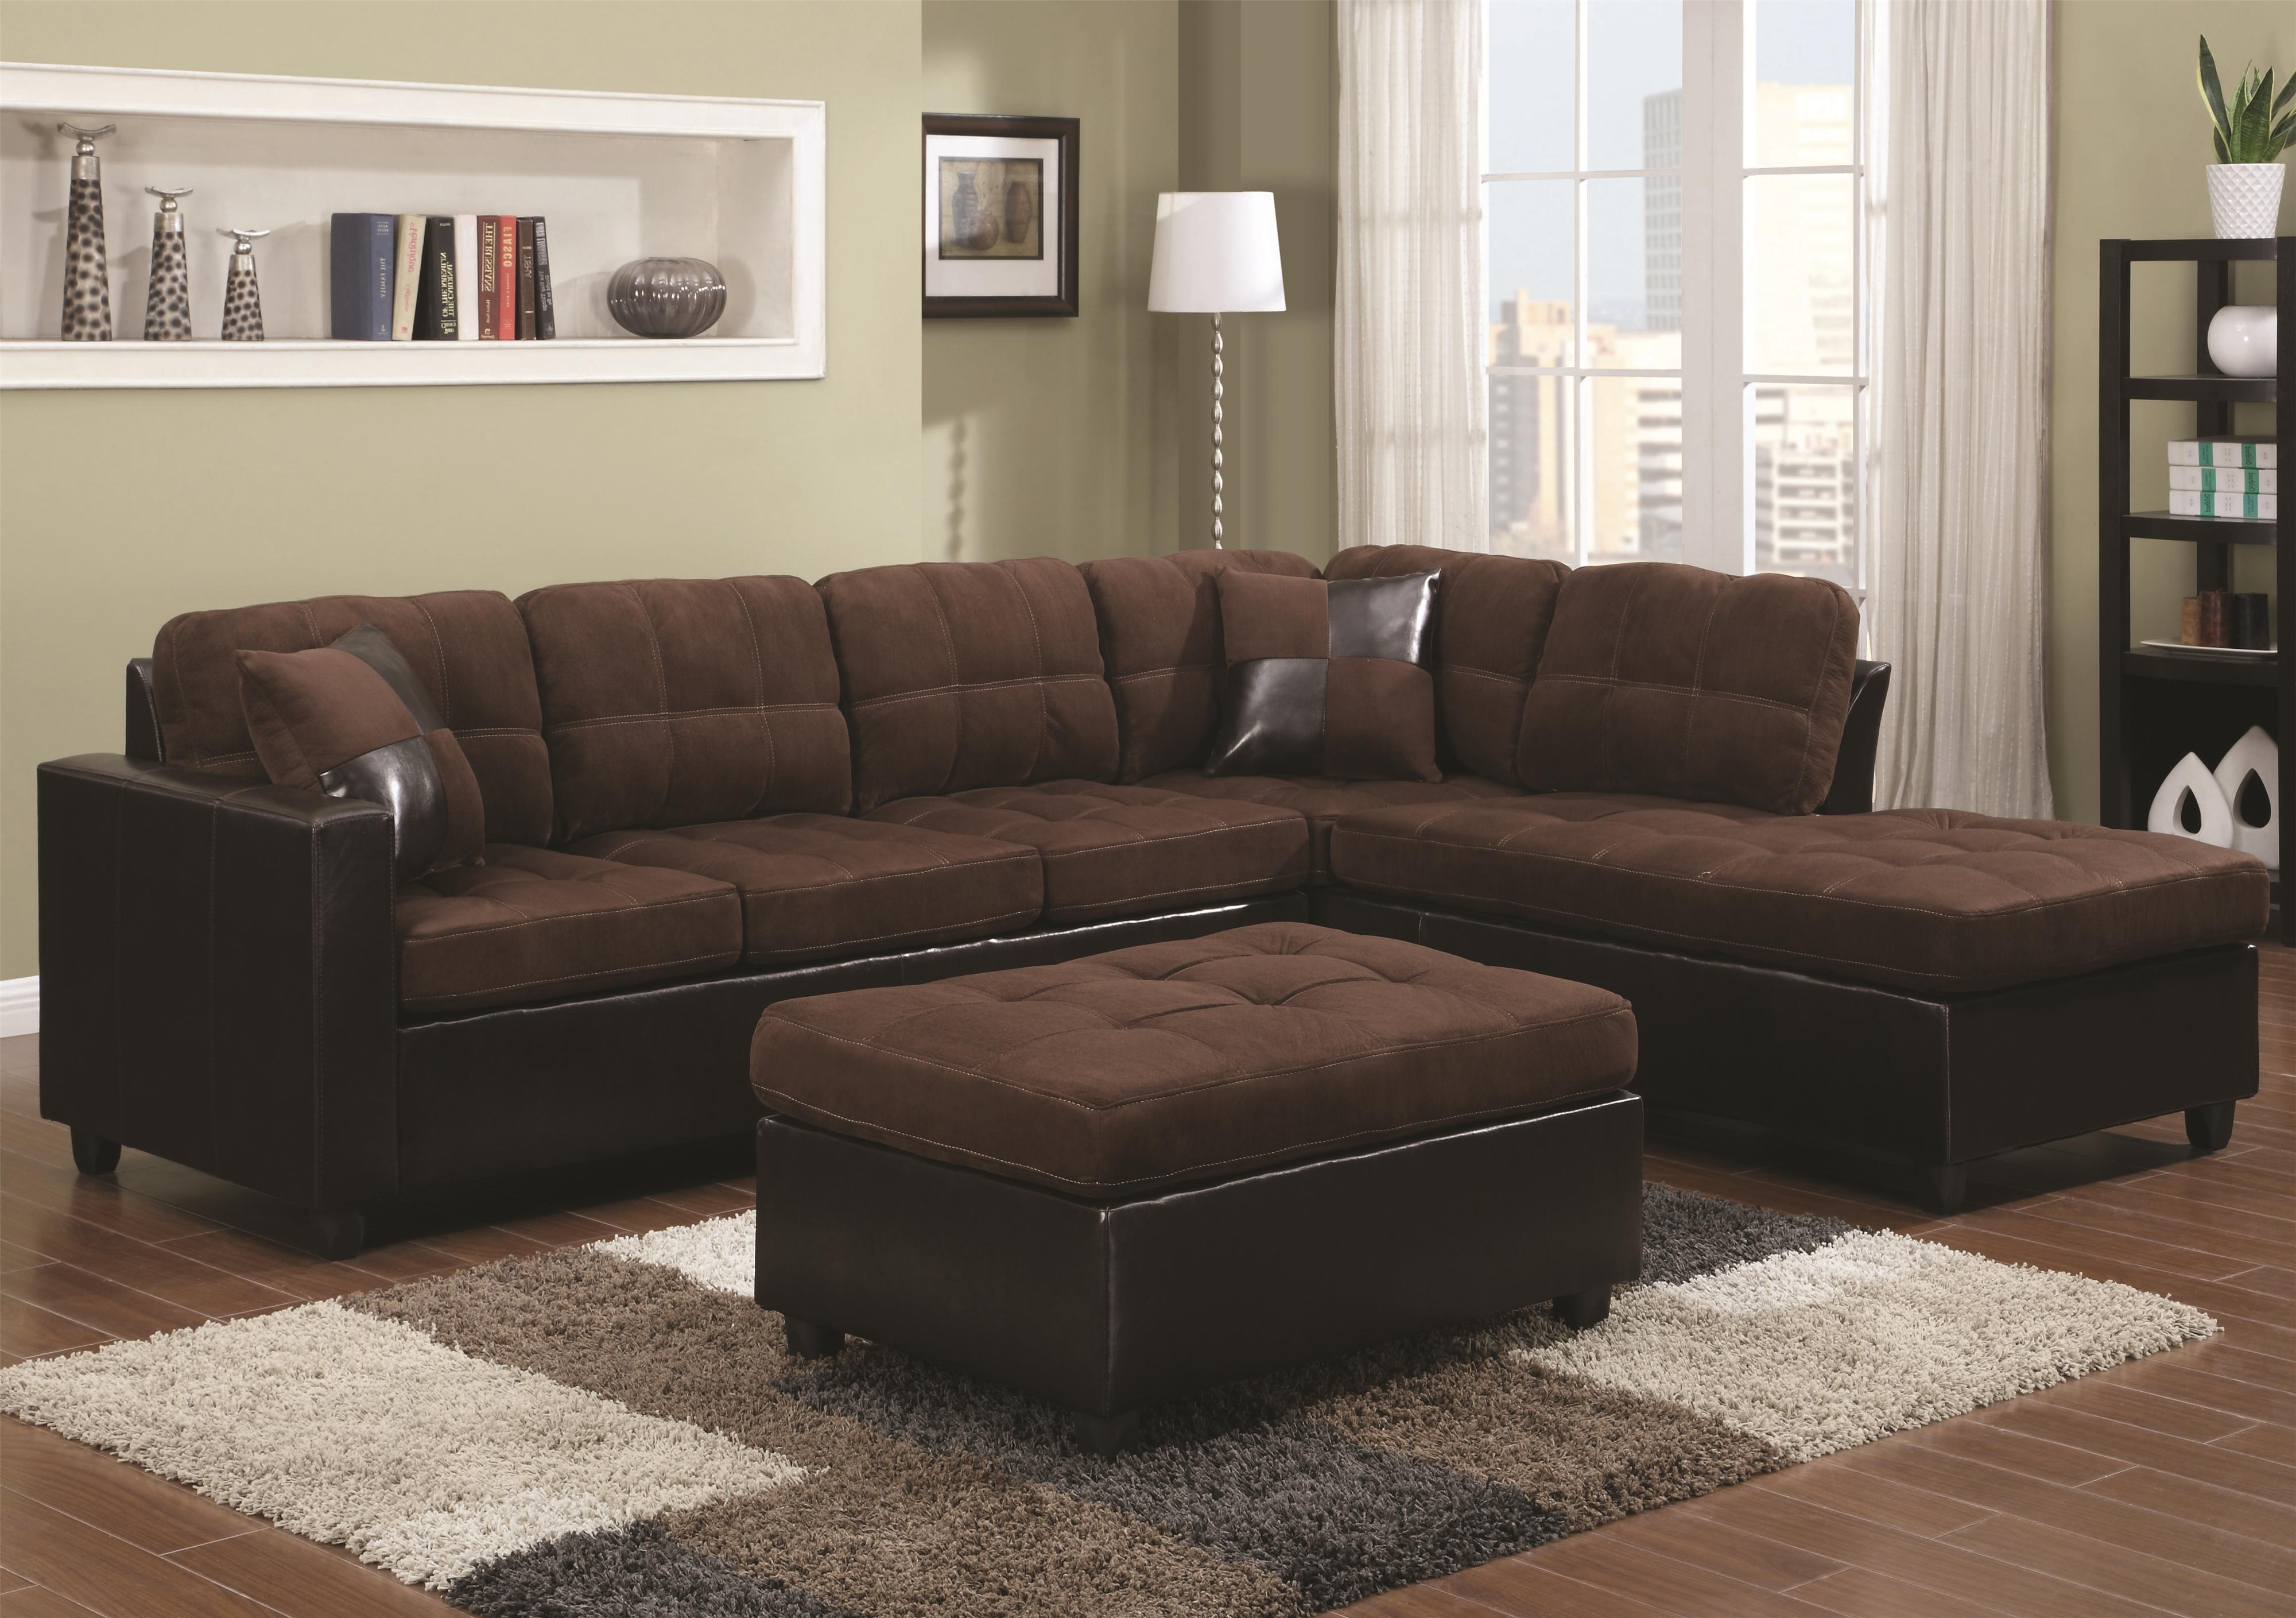 sofa deals nj frontier grey fabric bed coaster mallory reversible sectional with casual and